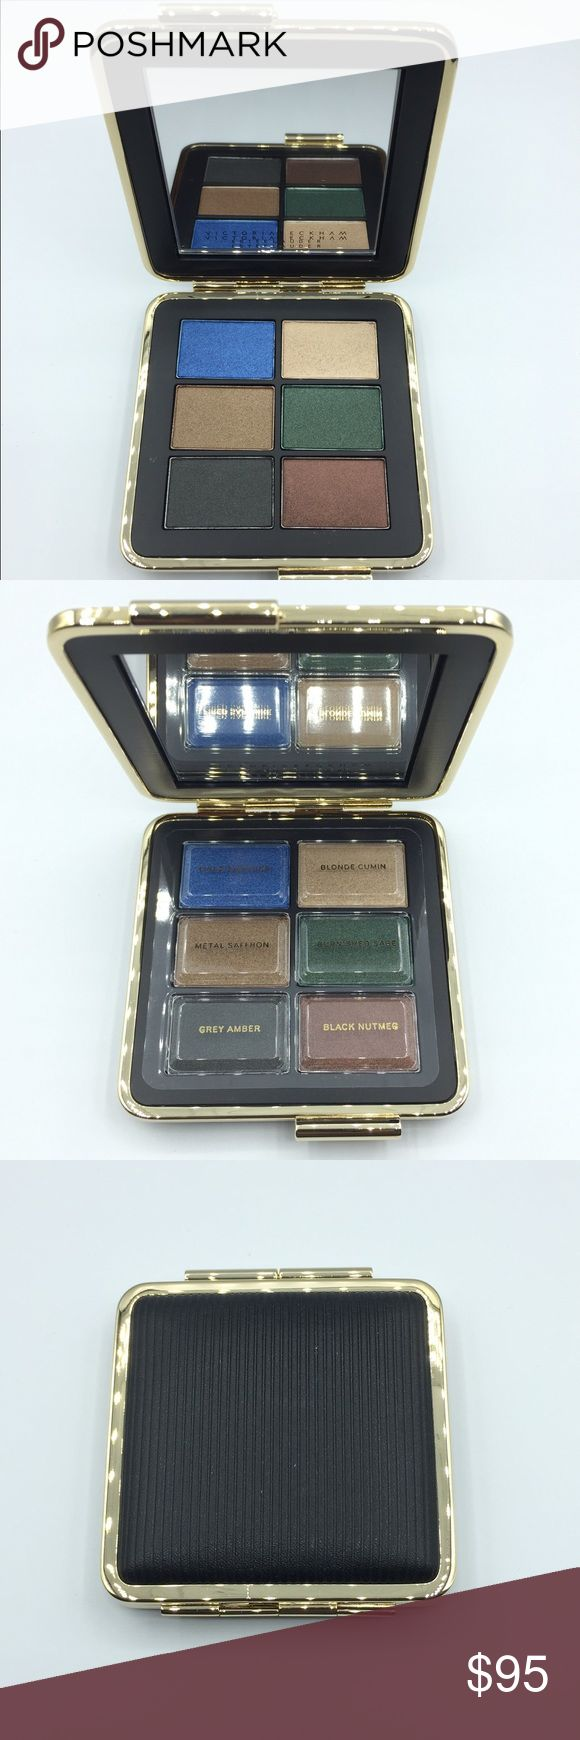 BNIB Estée Lauder Victoria Beckham Eye Palette Contains six shimmery eyeshadows featuring a wet/dry powder formula.  Fired Sapphire: medium blue with a frosted finish Blonde Cumin: light-medium gold with a soft, frosted finish Metal Saffron: medium, golden brown with a golden bronze shimmer Burnished Sage: medium-dark forest green with a frosted finish Gray Amber: dark, charcoal gray with a satiny shimmer Black Nutmeg: dark reddish brown with a pearly sheen  100% Authentic. Limited Edition…